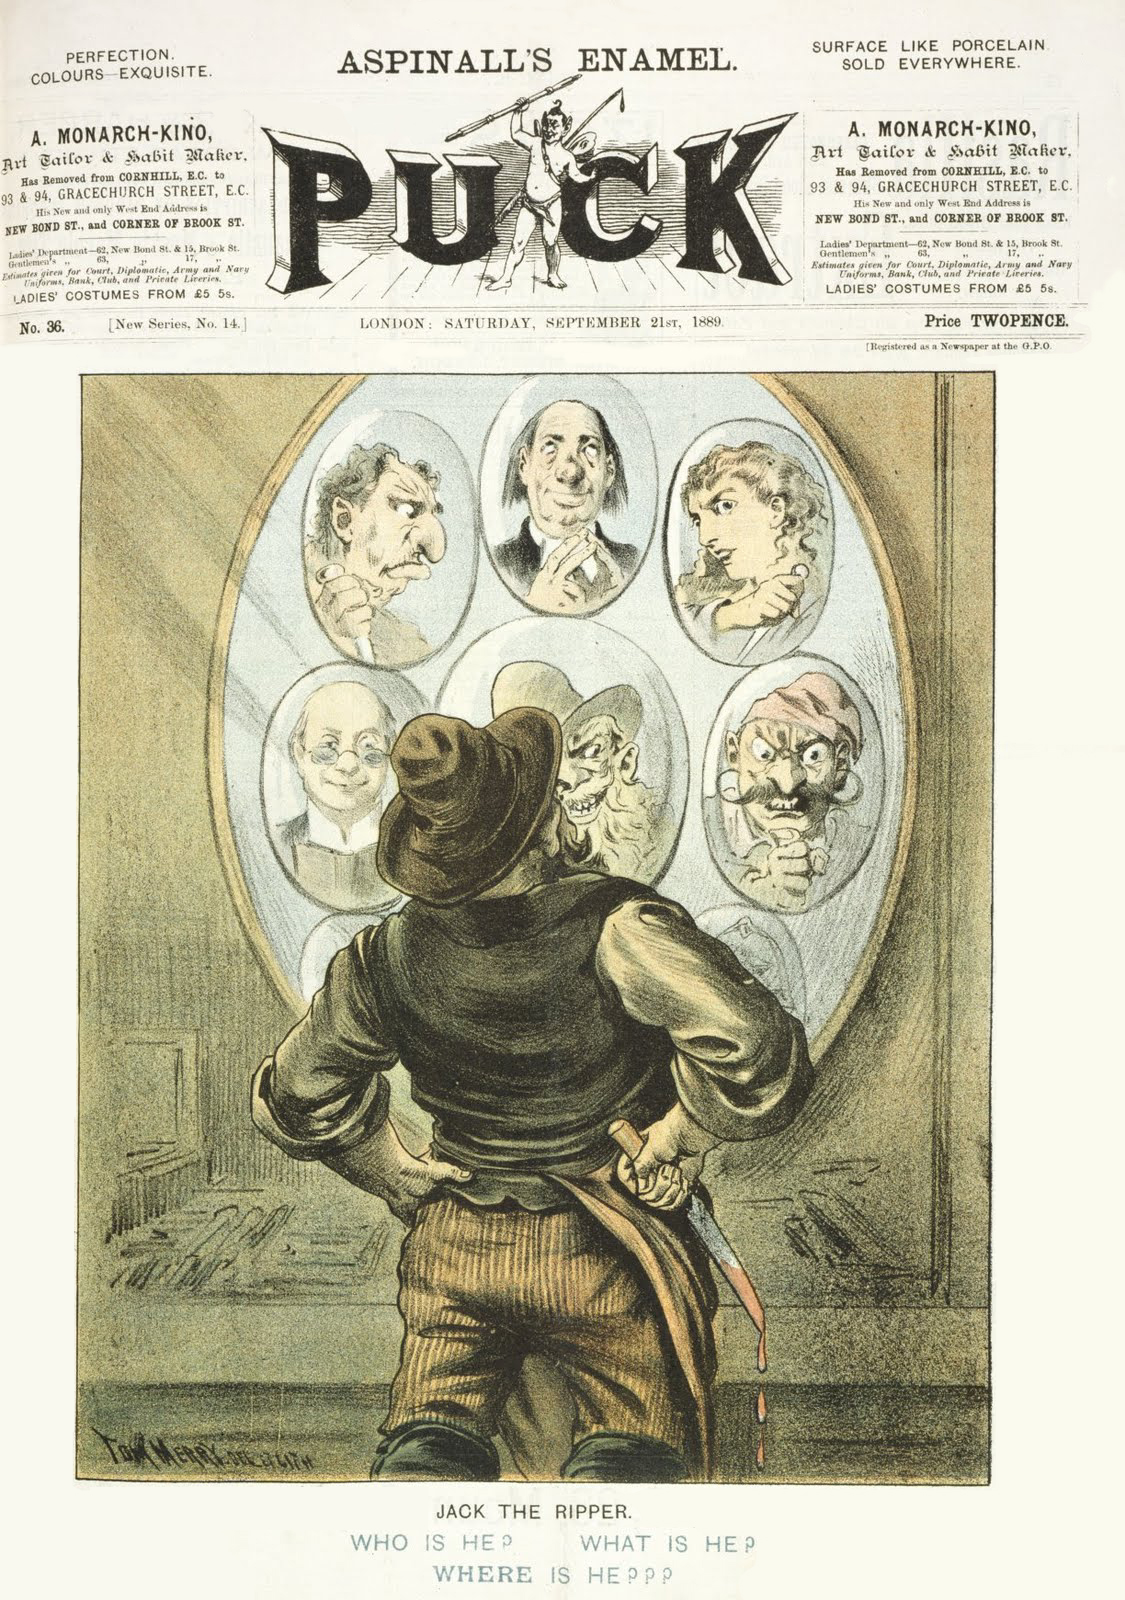 The cover of the 21 September 1889 issue of Puck magazine, featuring cartoonist Tom Merry's depiction of the unidentified Whitechapel murderer Jack the Ripper.